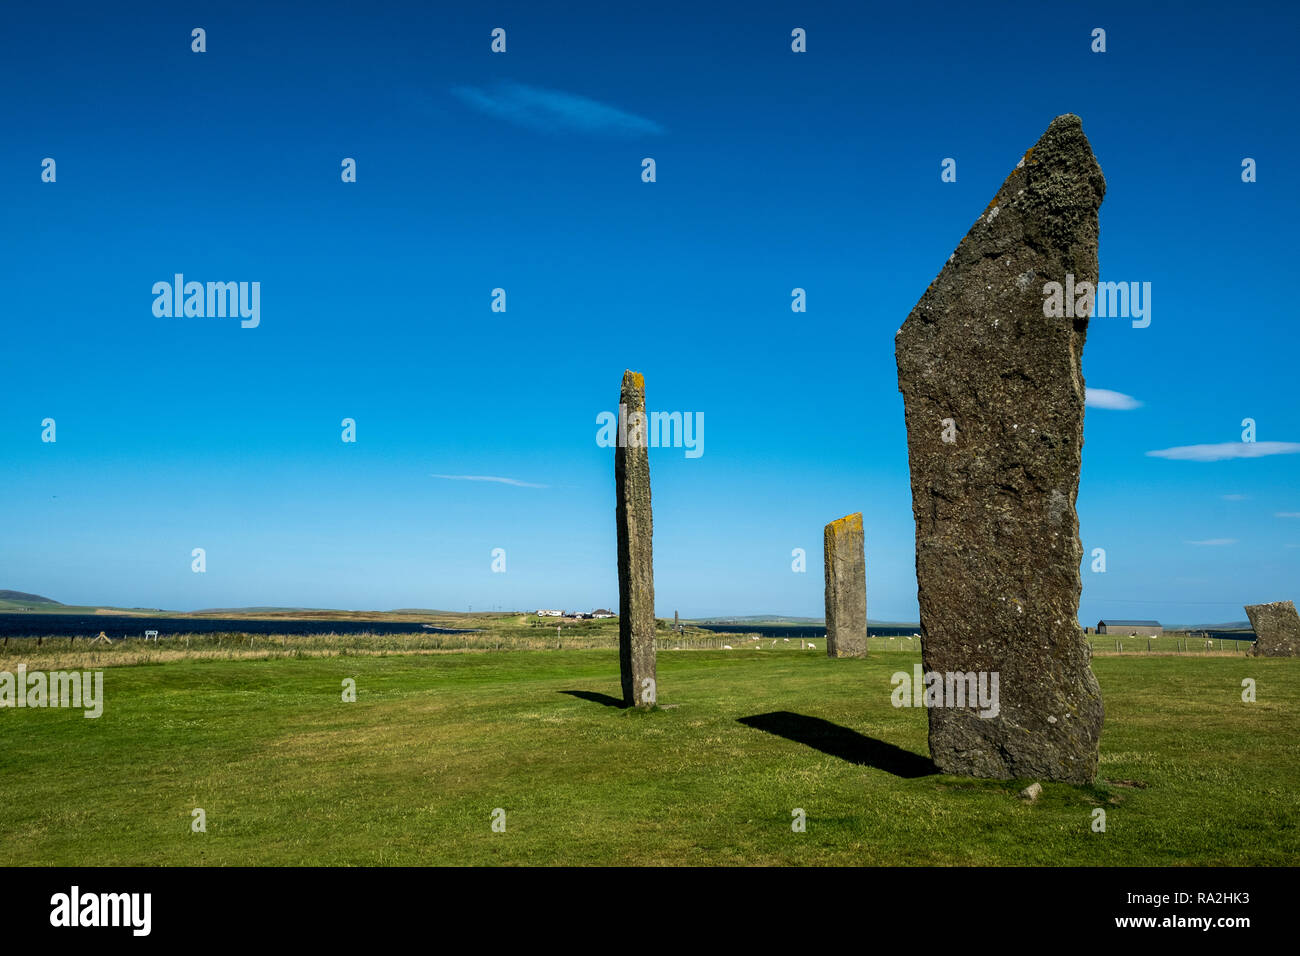 The Standing Stones of Stenness, a Neolithic monument and part of the Orkney Neolithic World Heritage Site in Scotland - Stock Image